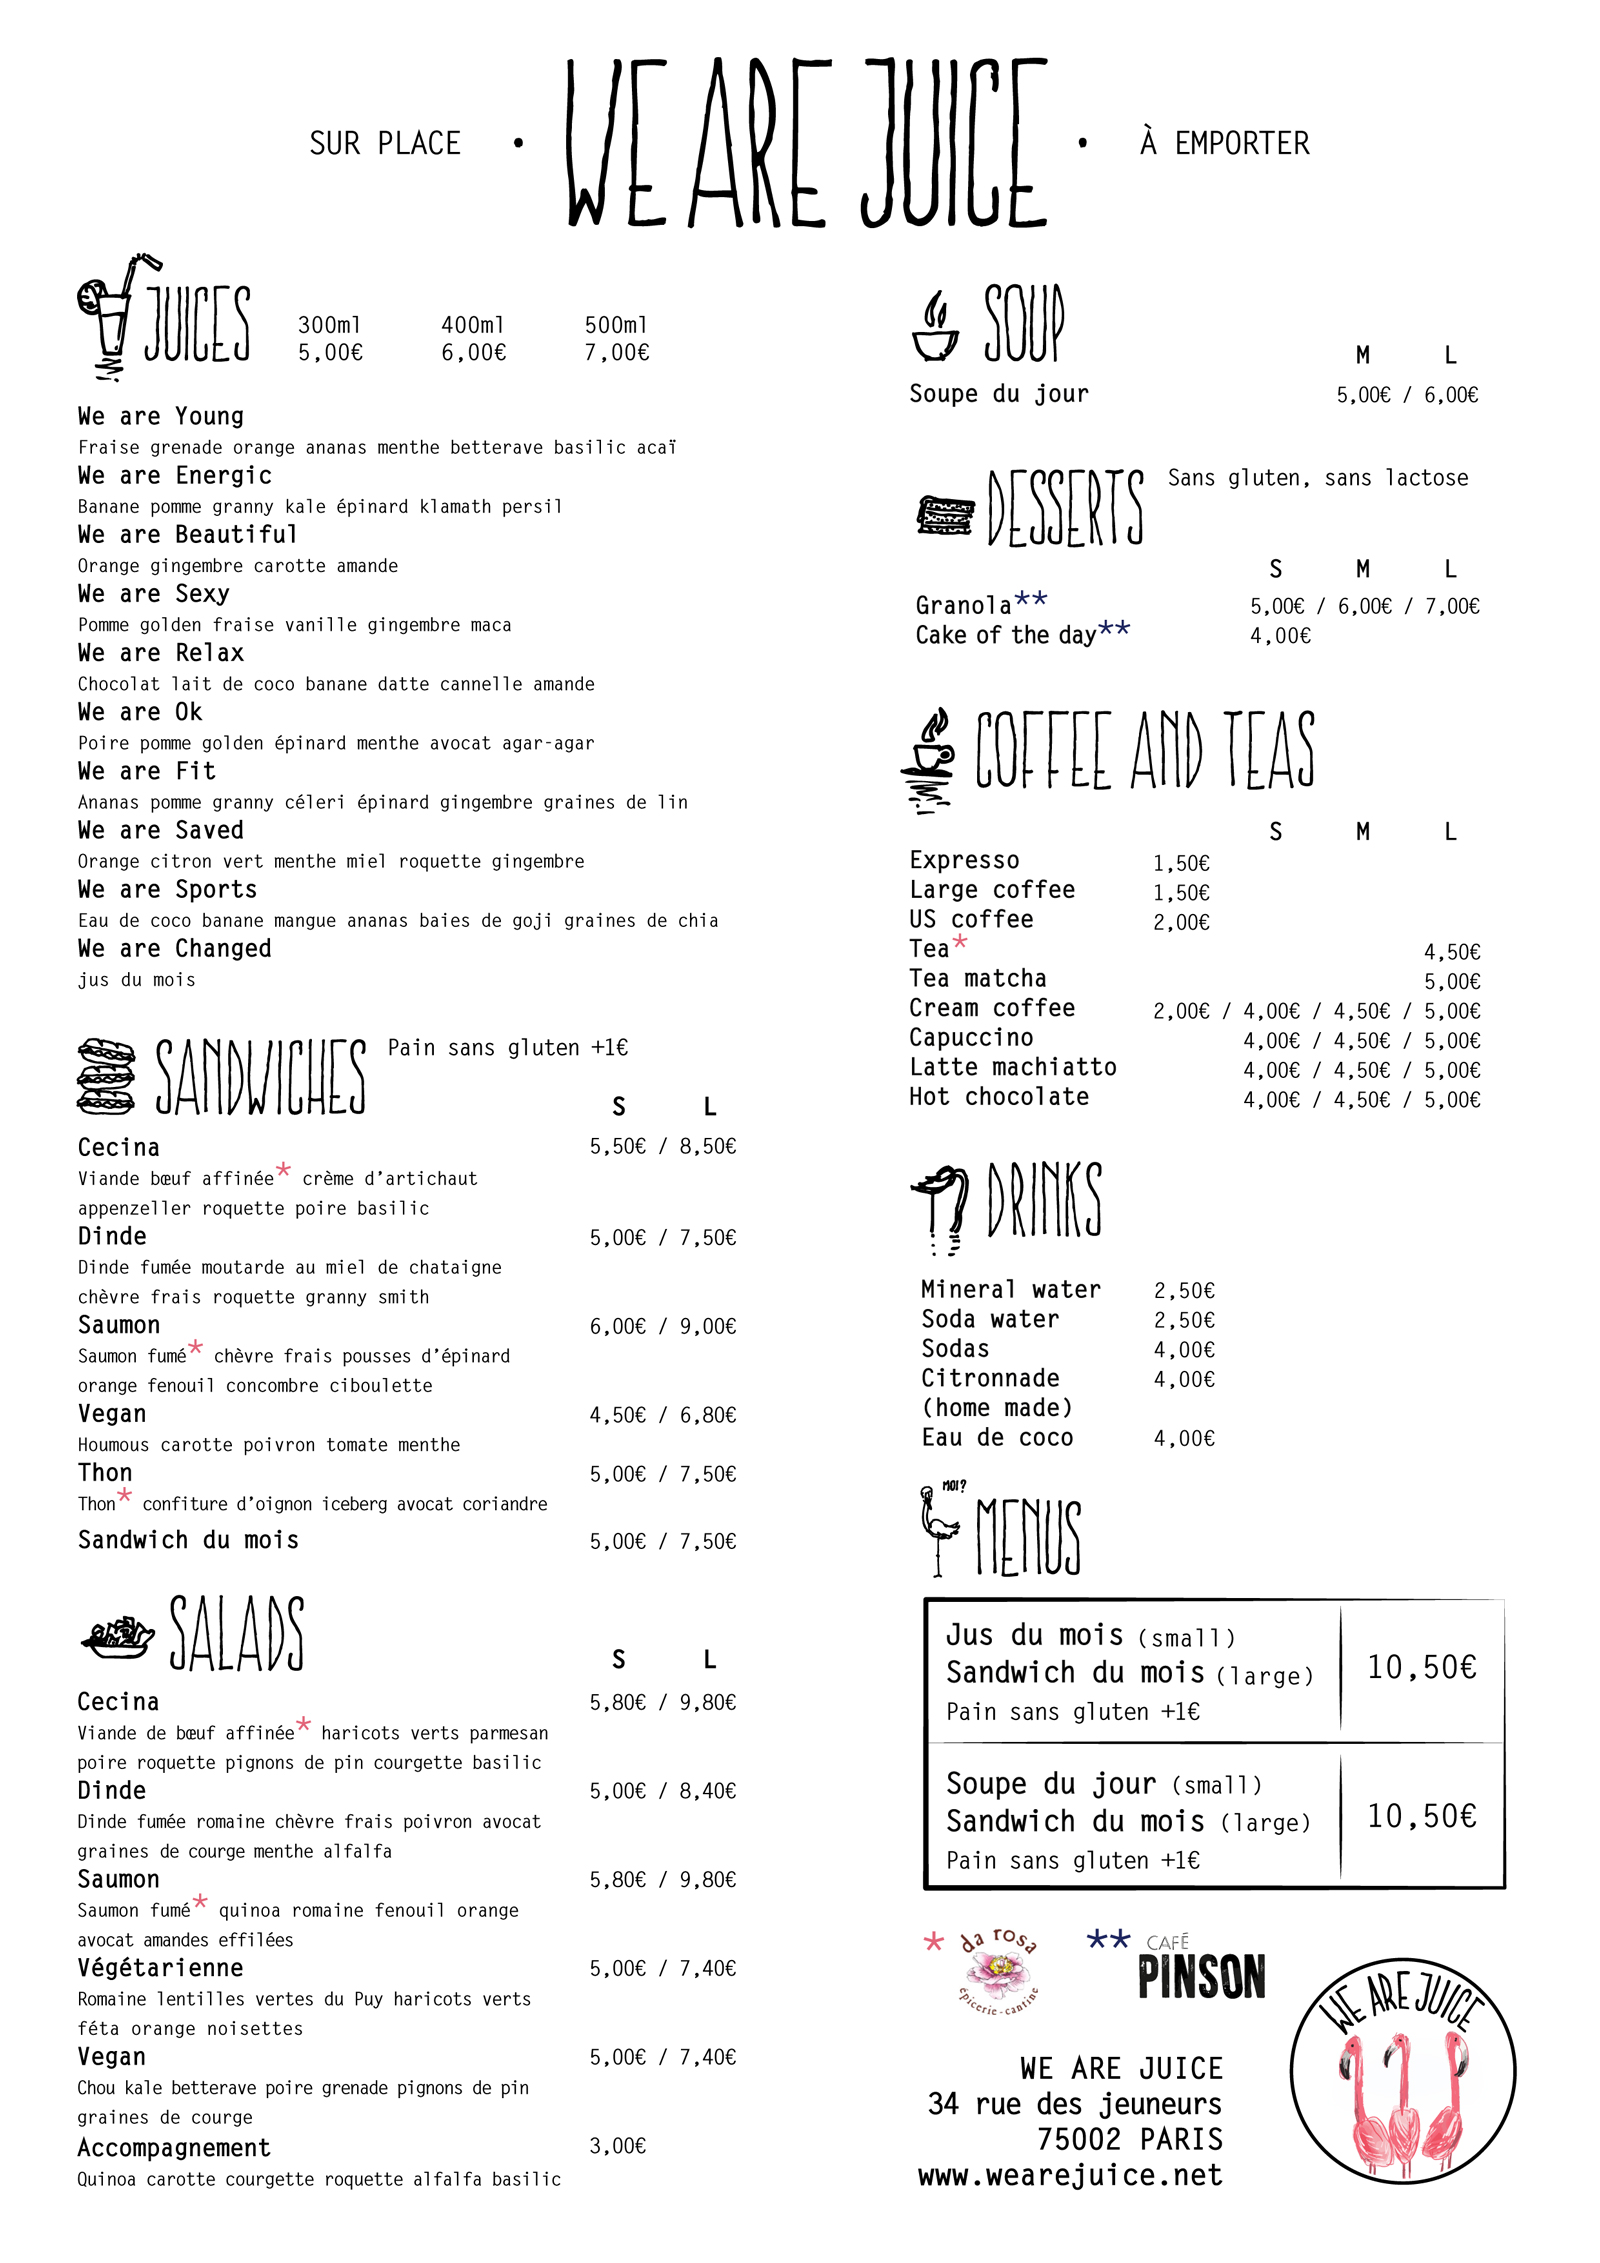 MENU_WE_ARE_JUICE_2015